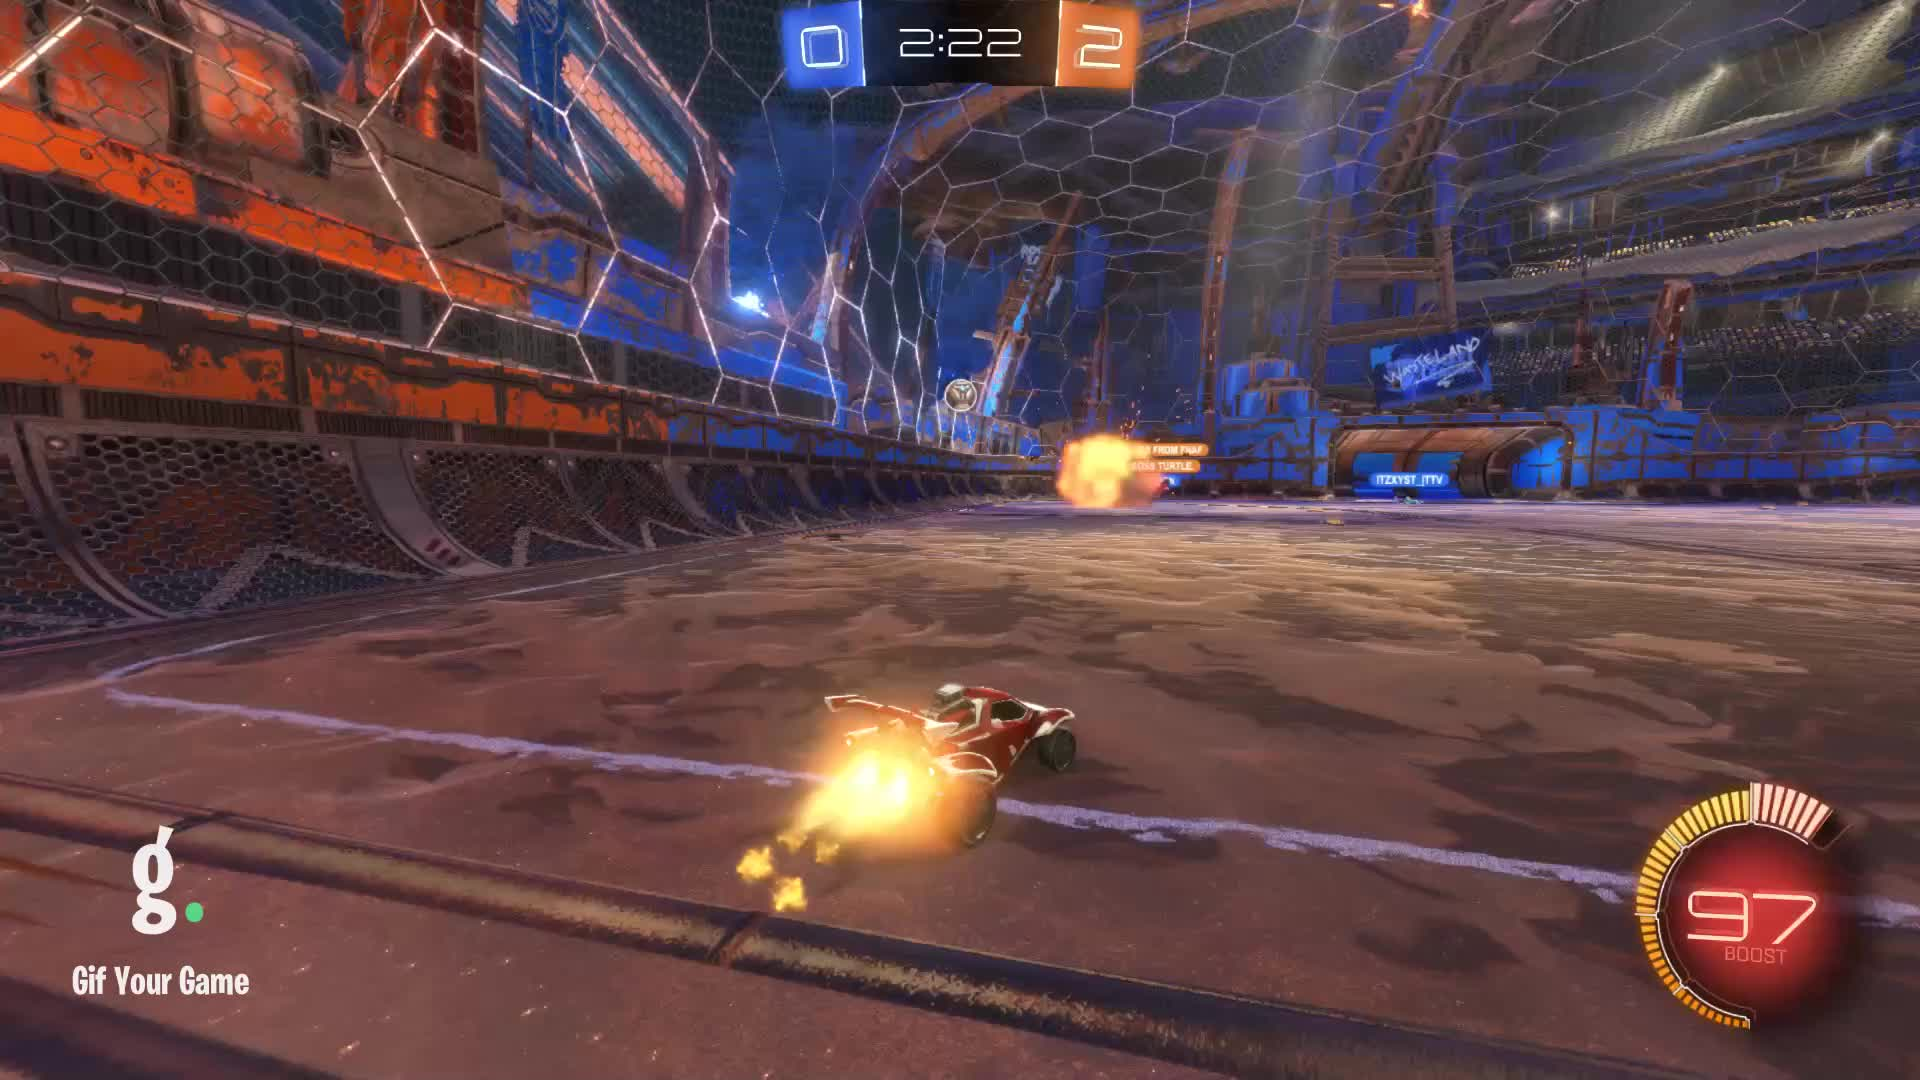 Exonan, Gif Your Game, GifYourGame, Goal, Rocket League, RocketLeague, Goal 3: Exonan GIFs